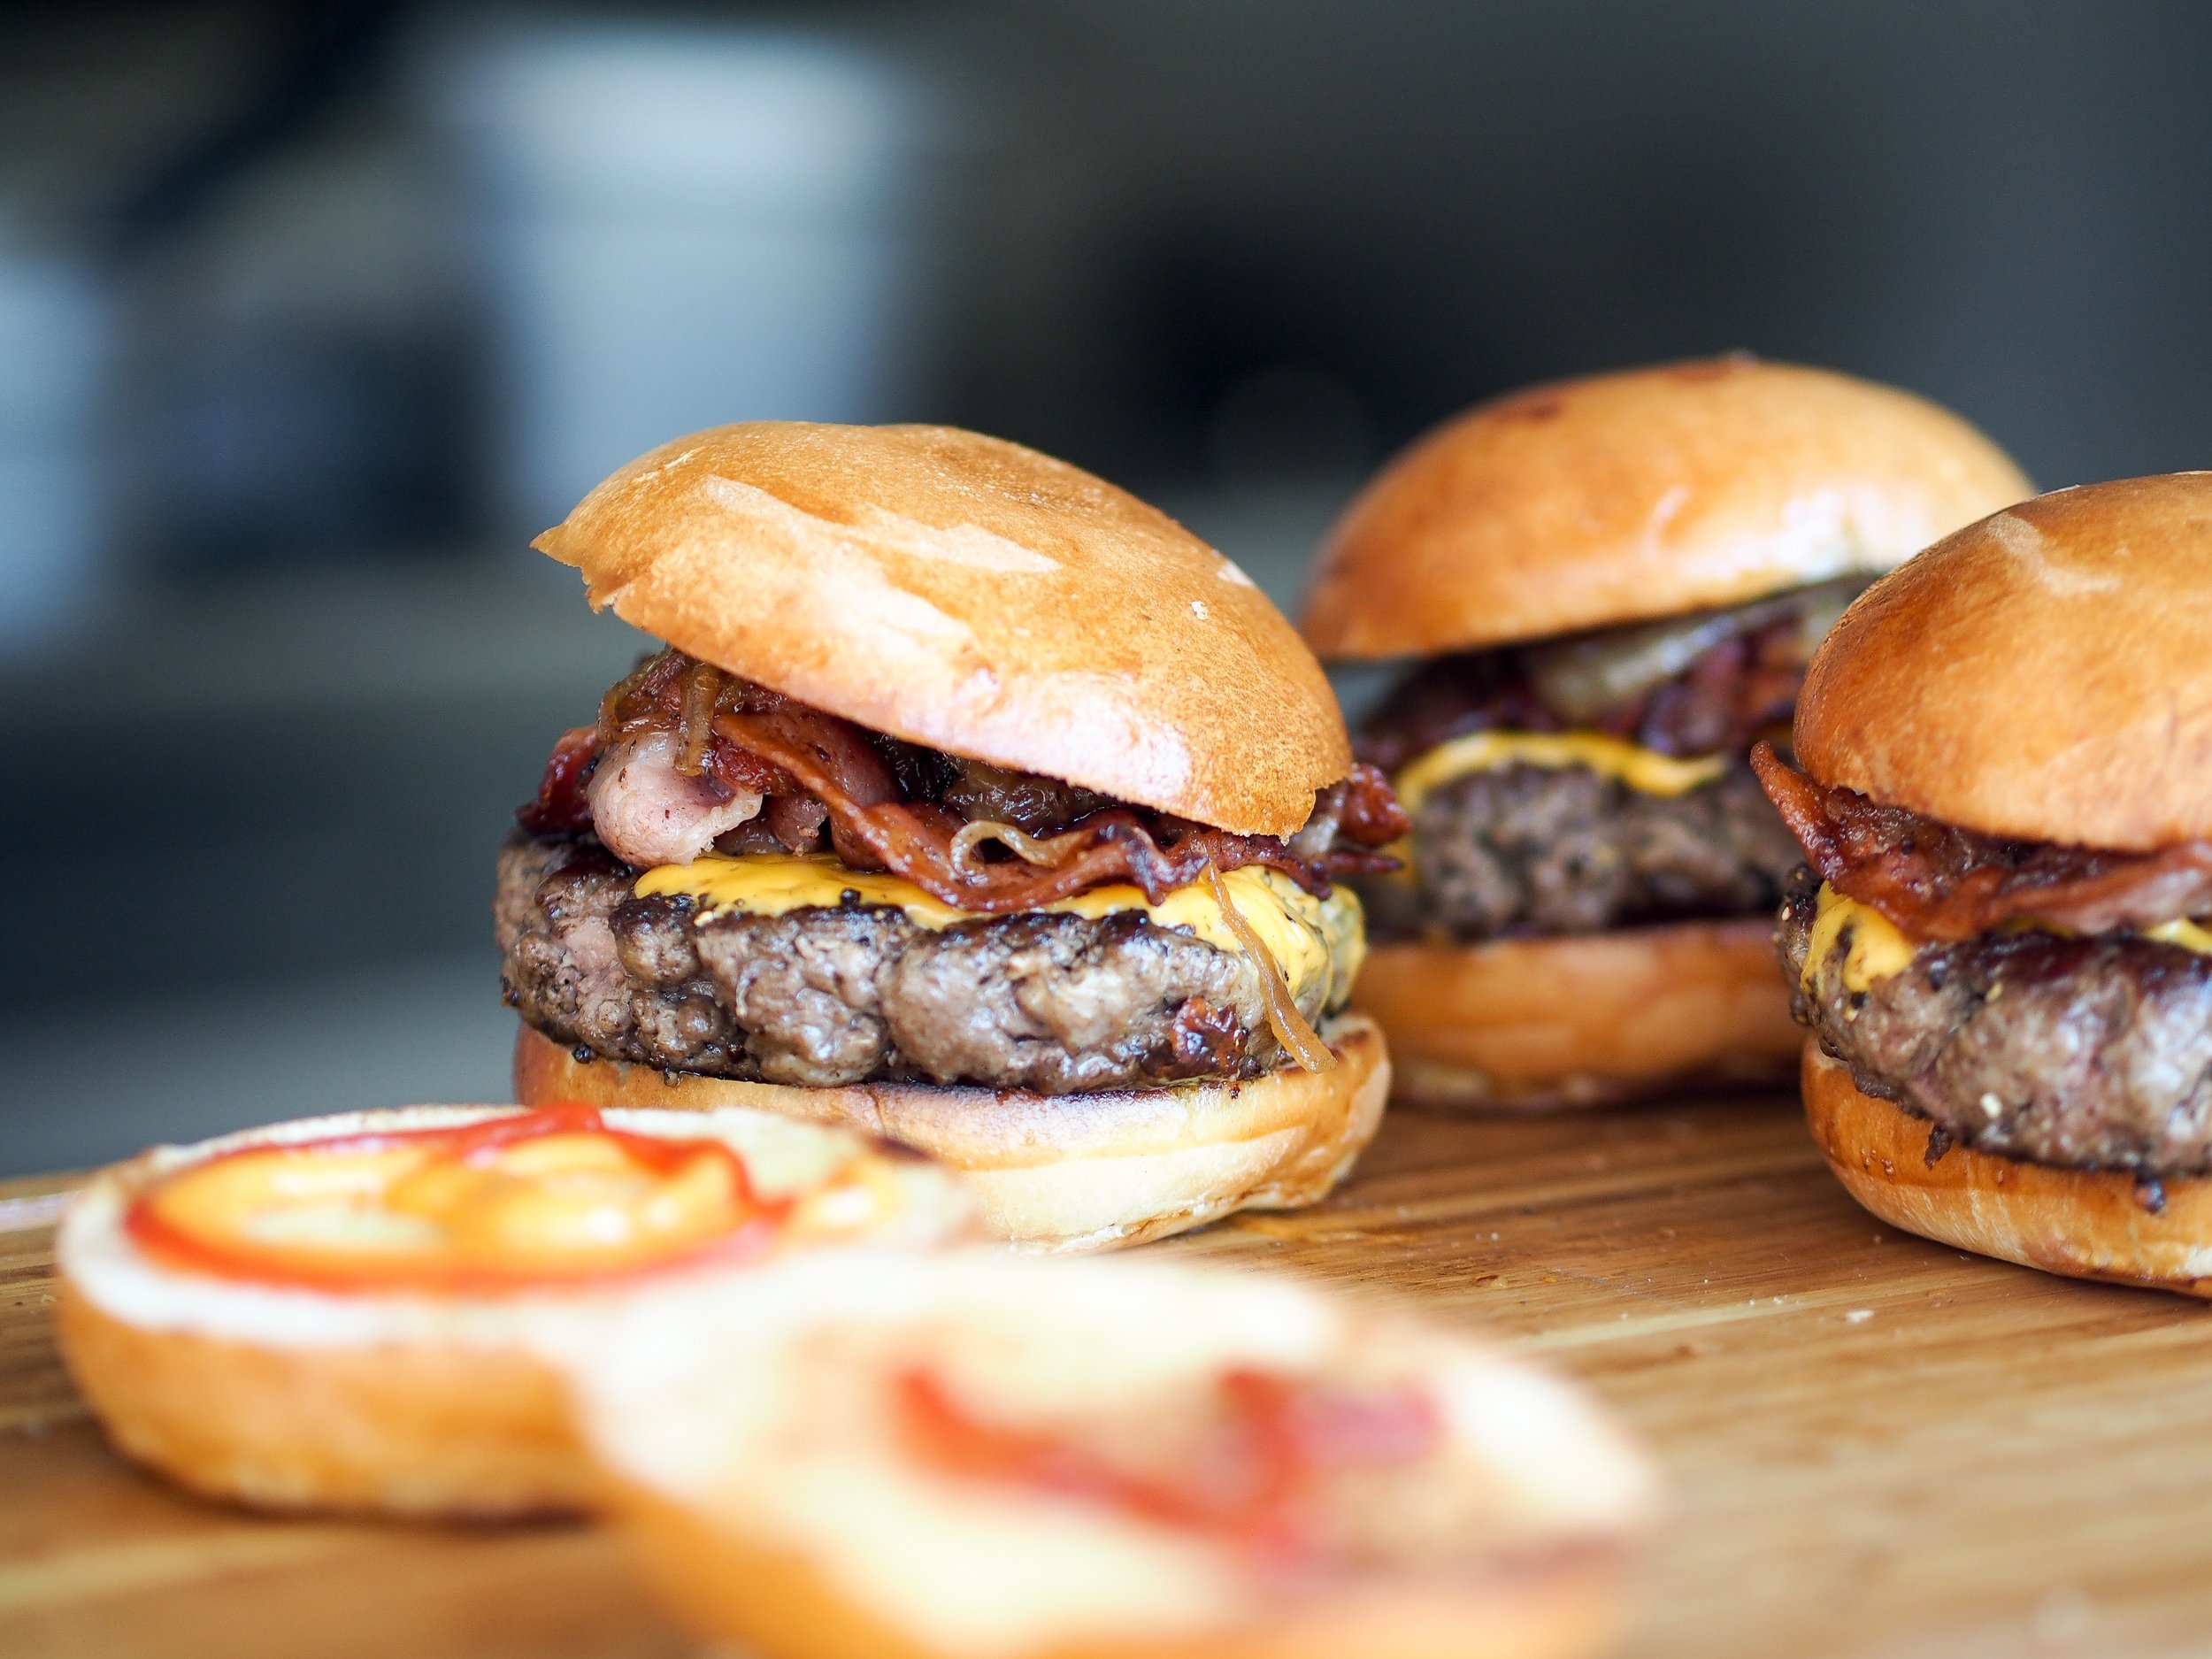 Juicy burgers. Make them with some oven baked sweet potato fries and YUM!